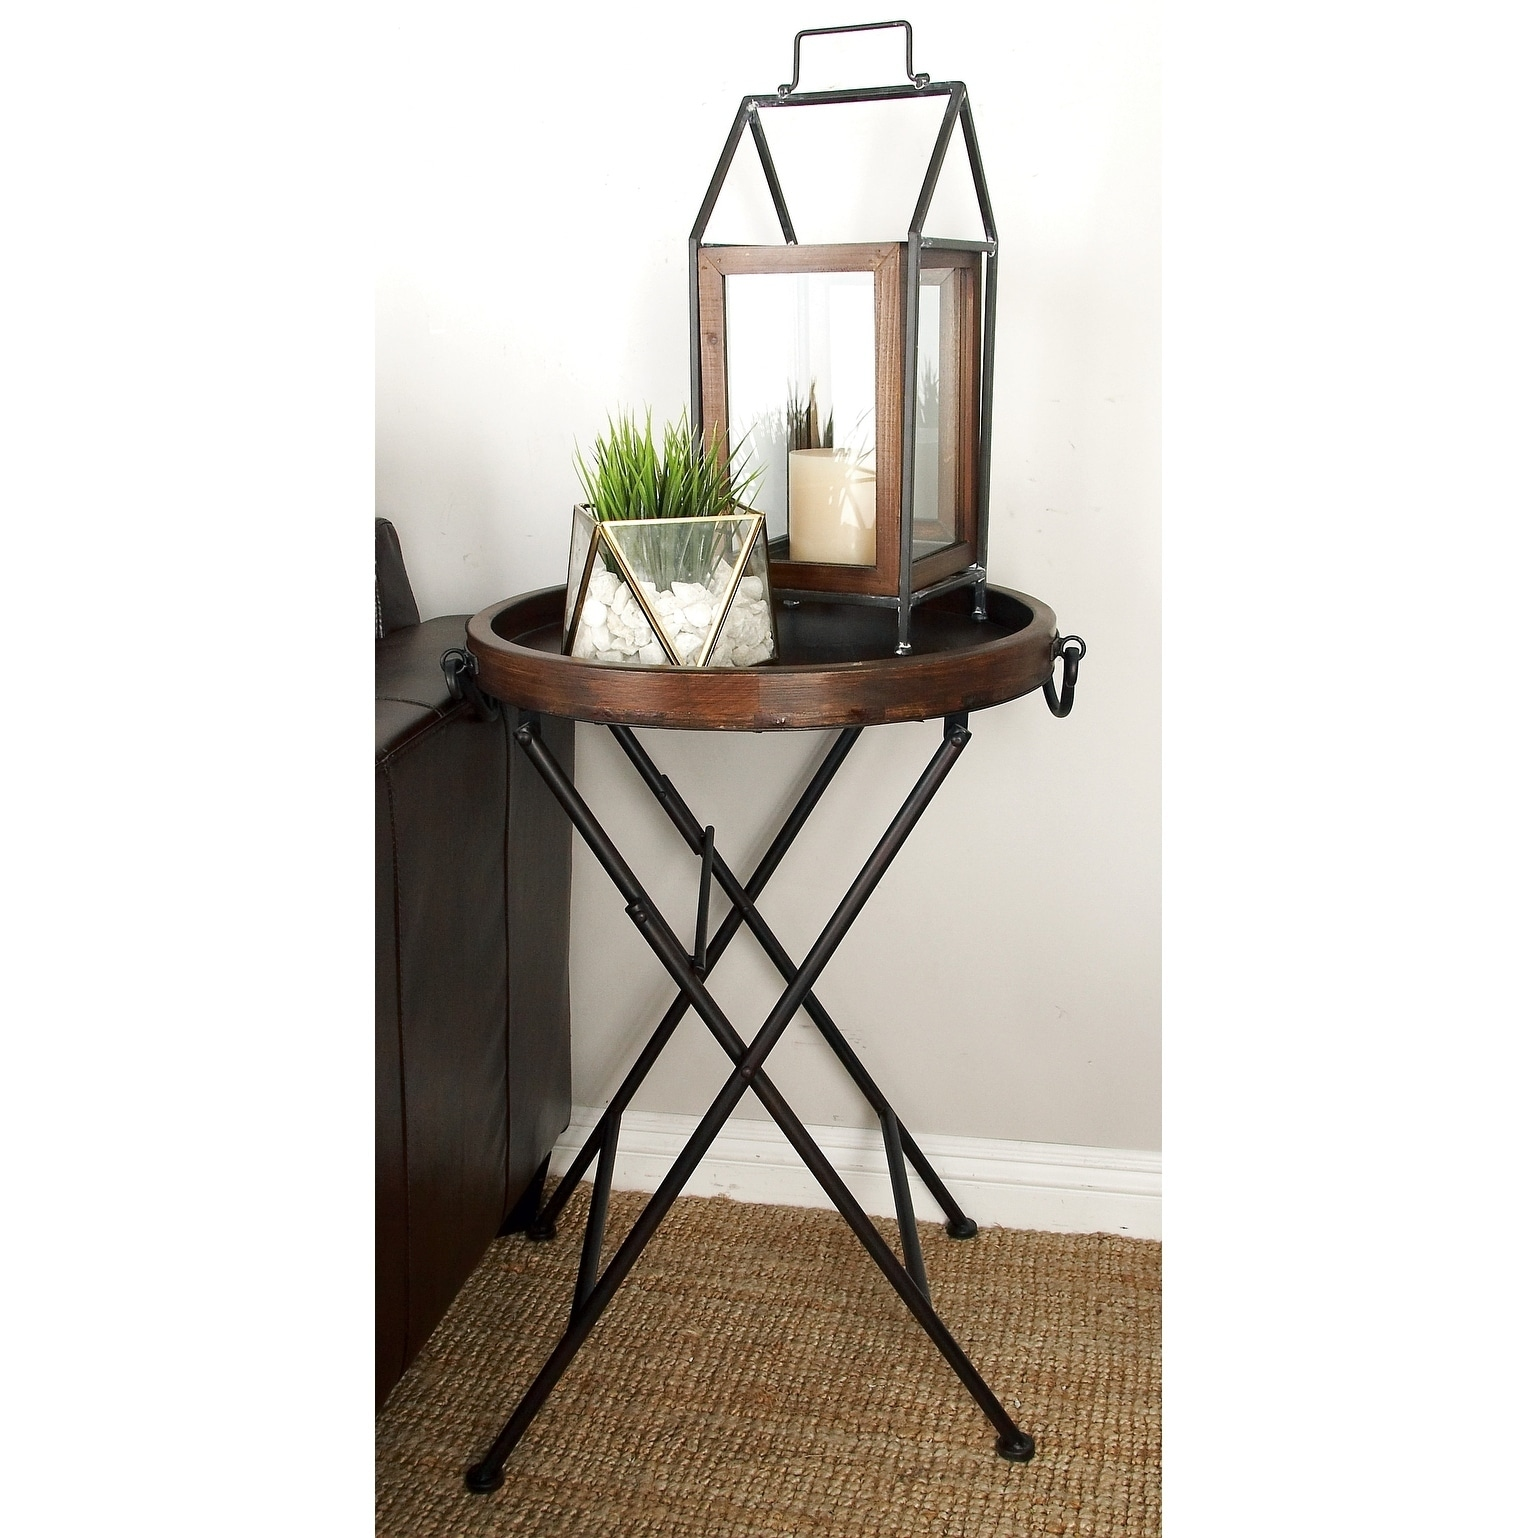 Studio 350 Metal Wood Tray Table (20 inches wide x 28 inc...